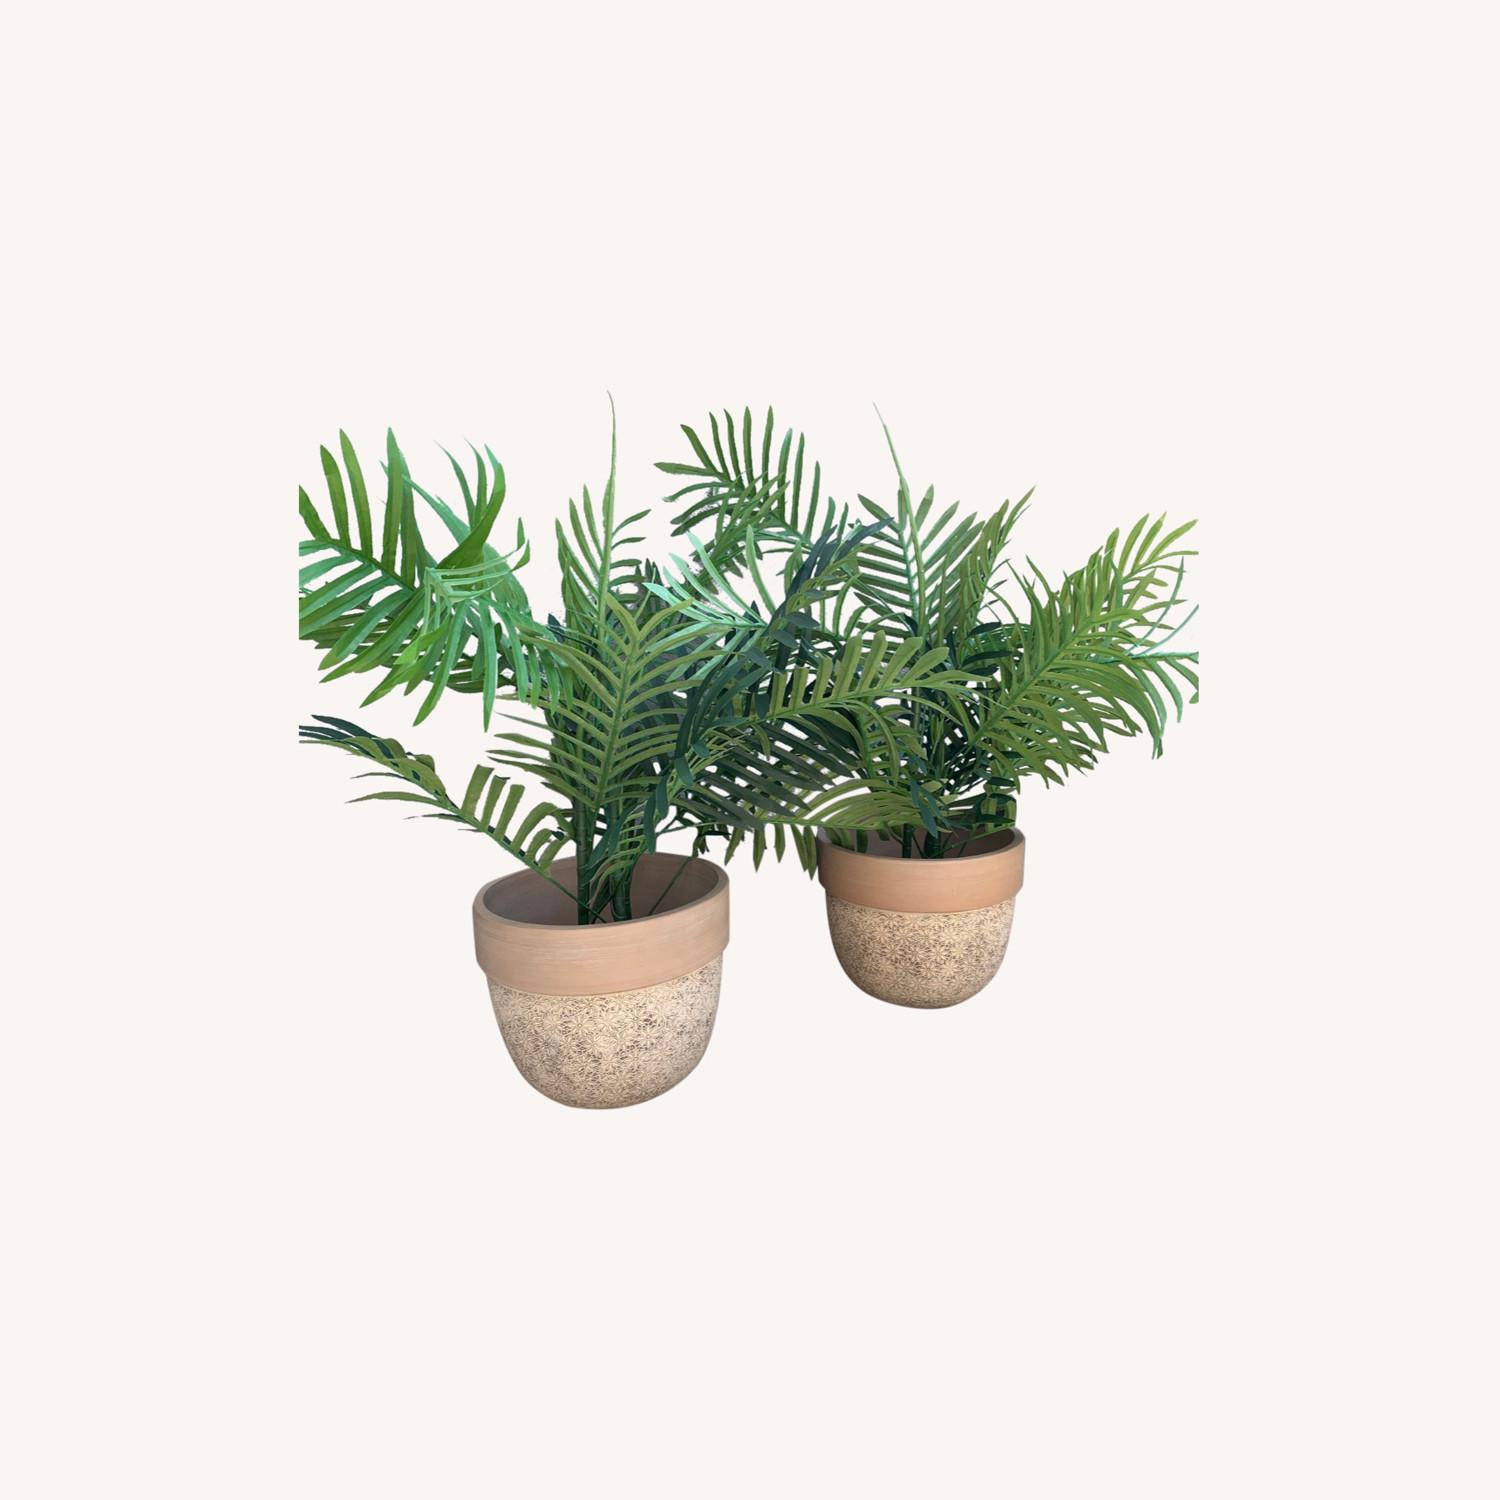 Ceramic Planters With Etched Flowers + Faux Palms - image-0